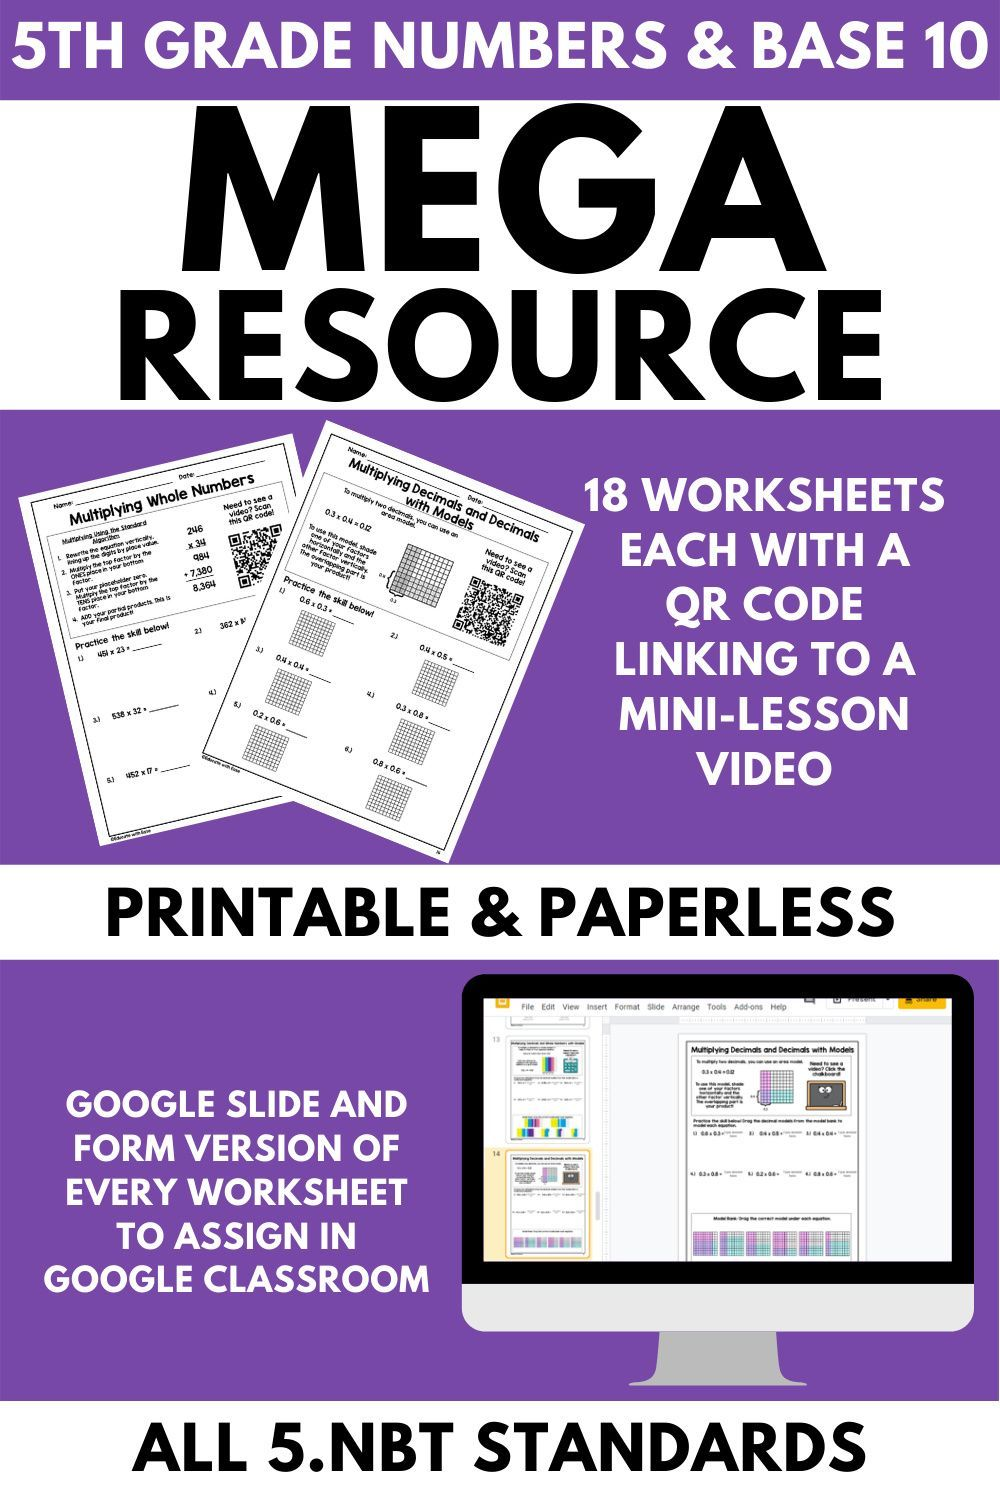 5th Grade Numbers and Base 10 MEGA Resource   Google classroom resources [ 1500 x 1000 Pixel ]